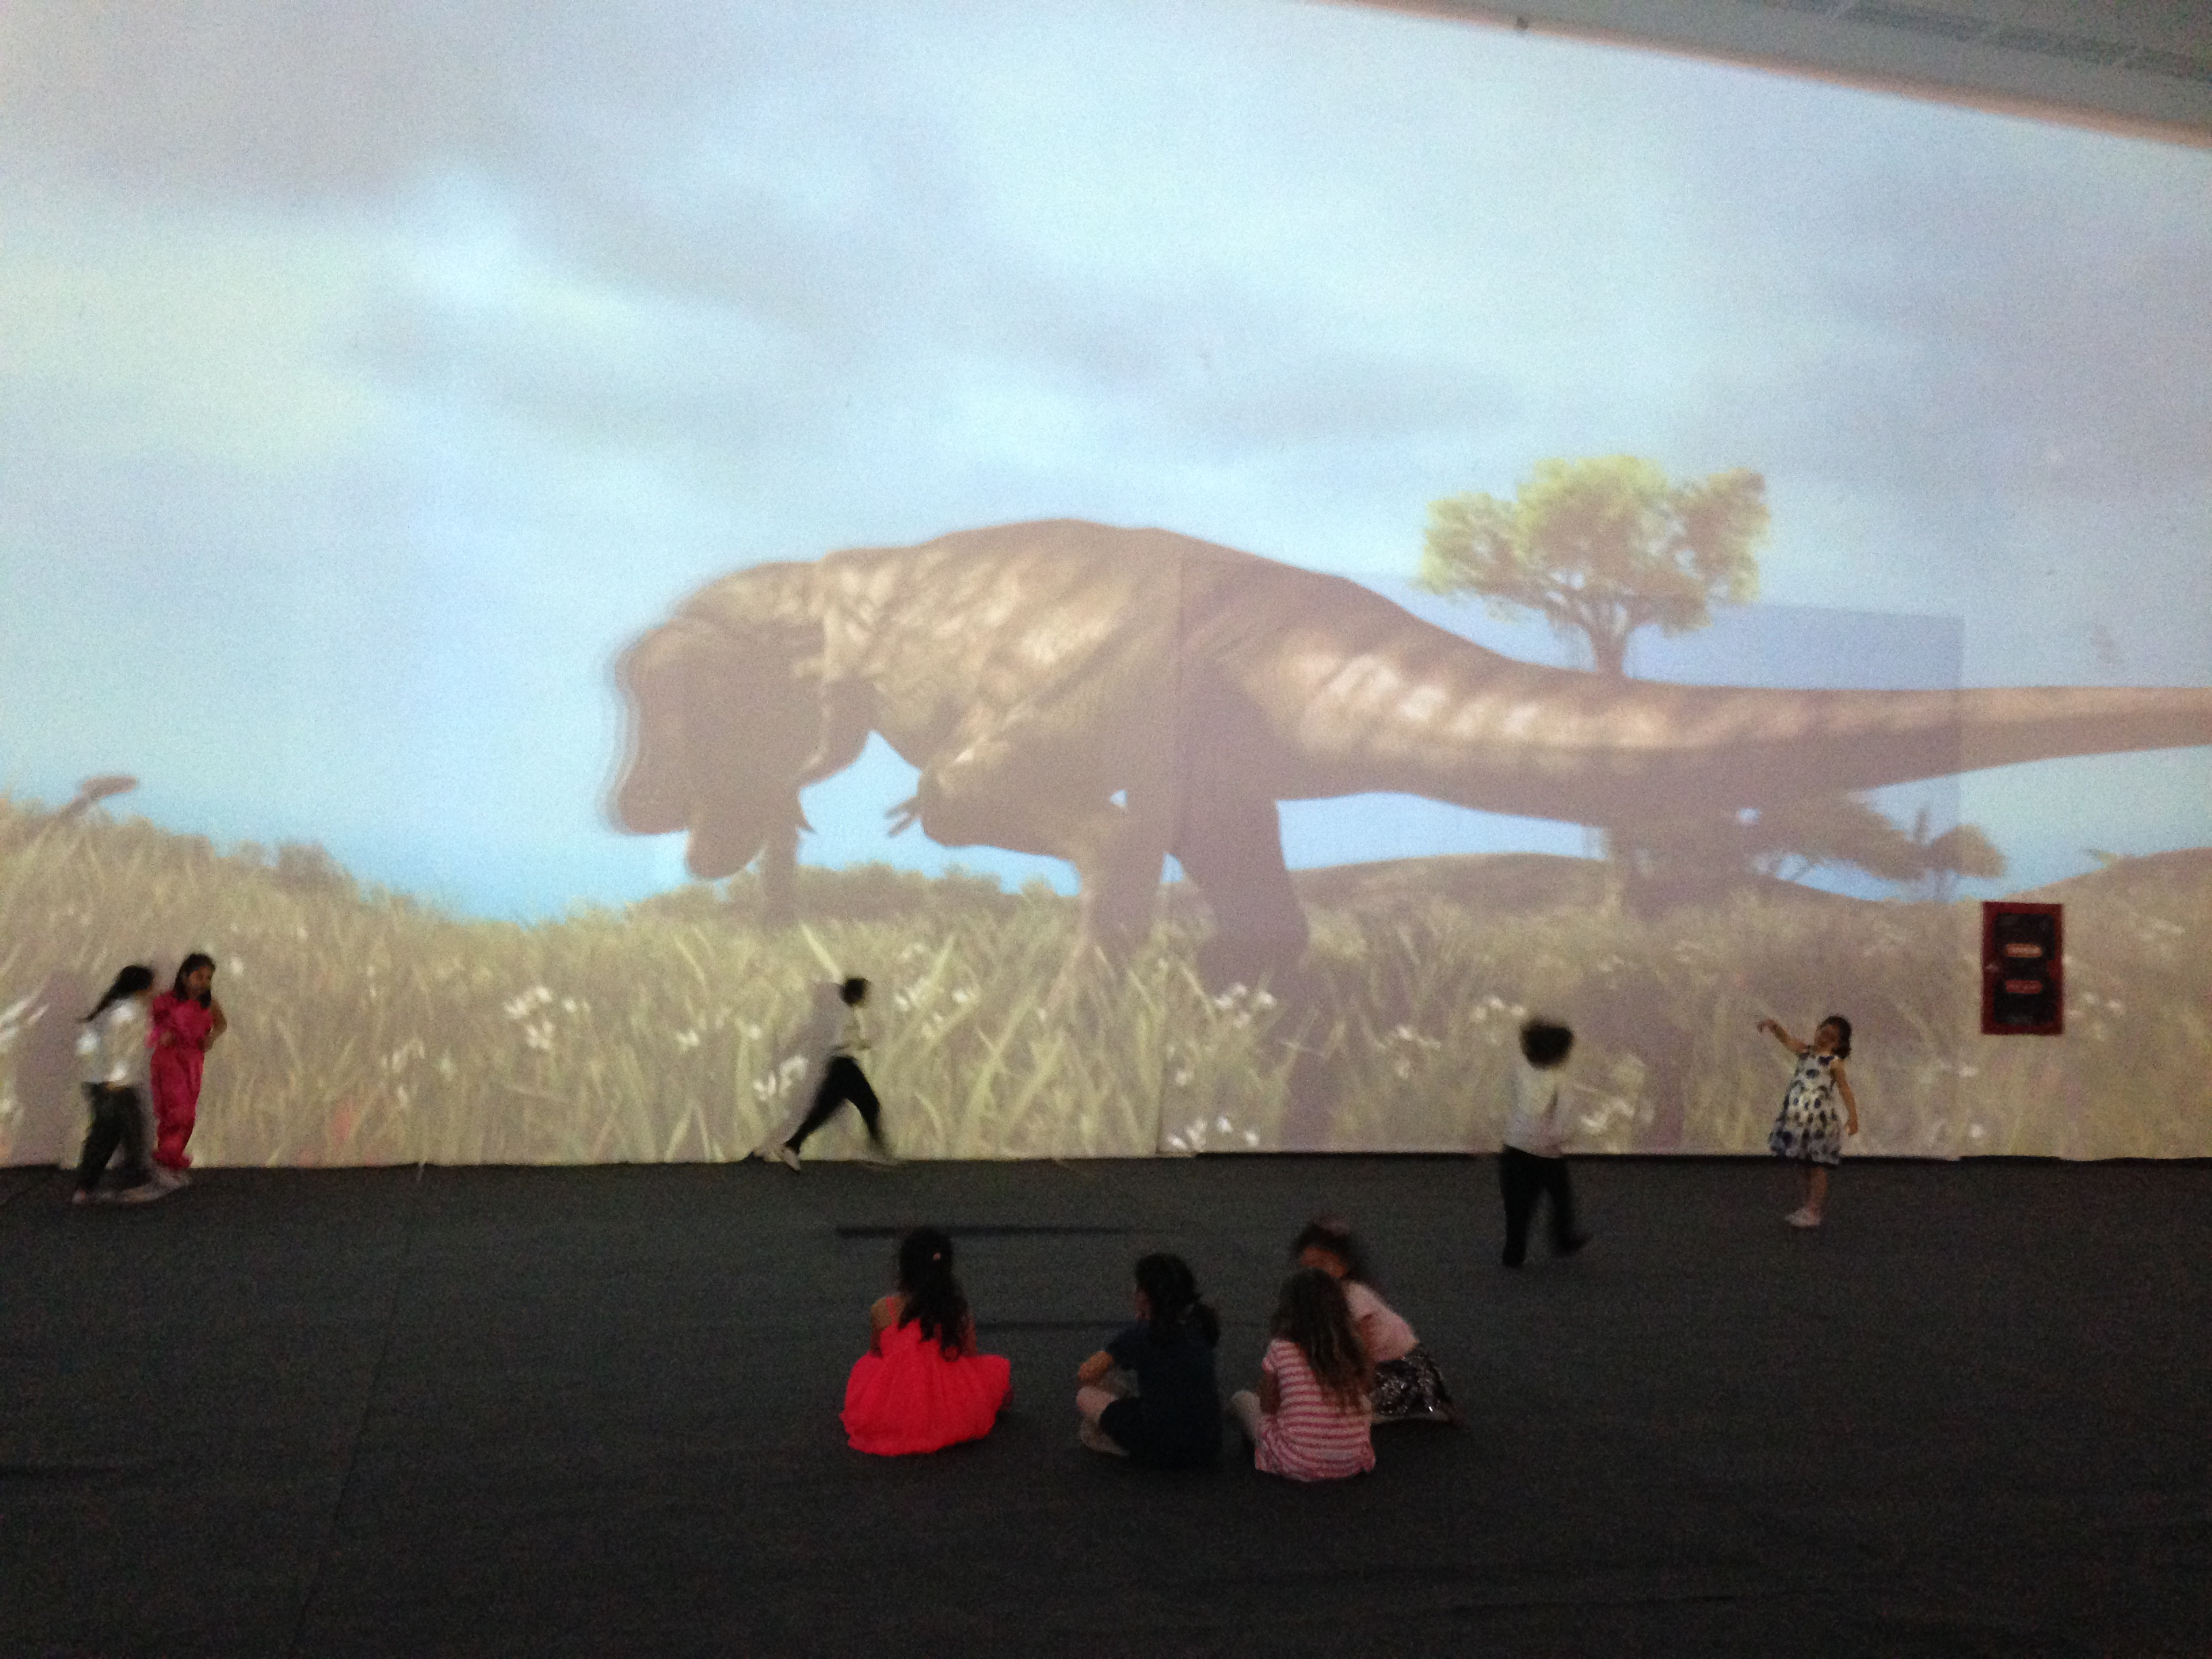 Dinosors in giant screen